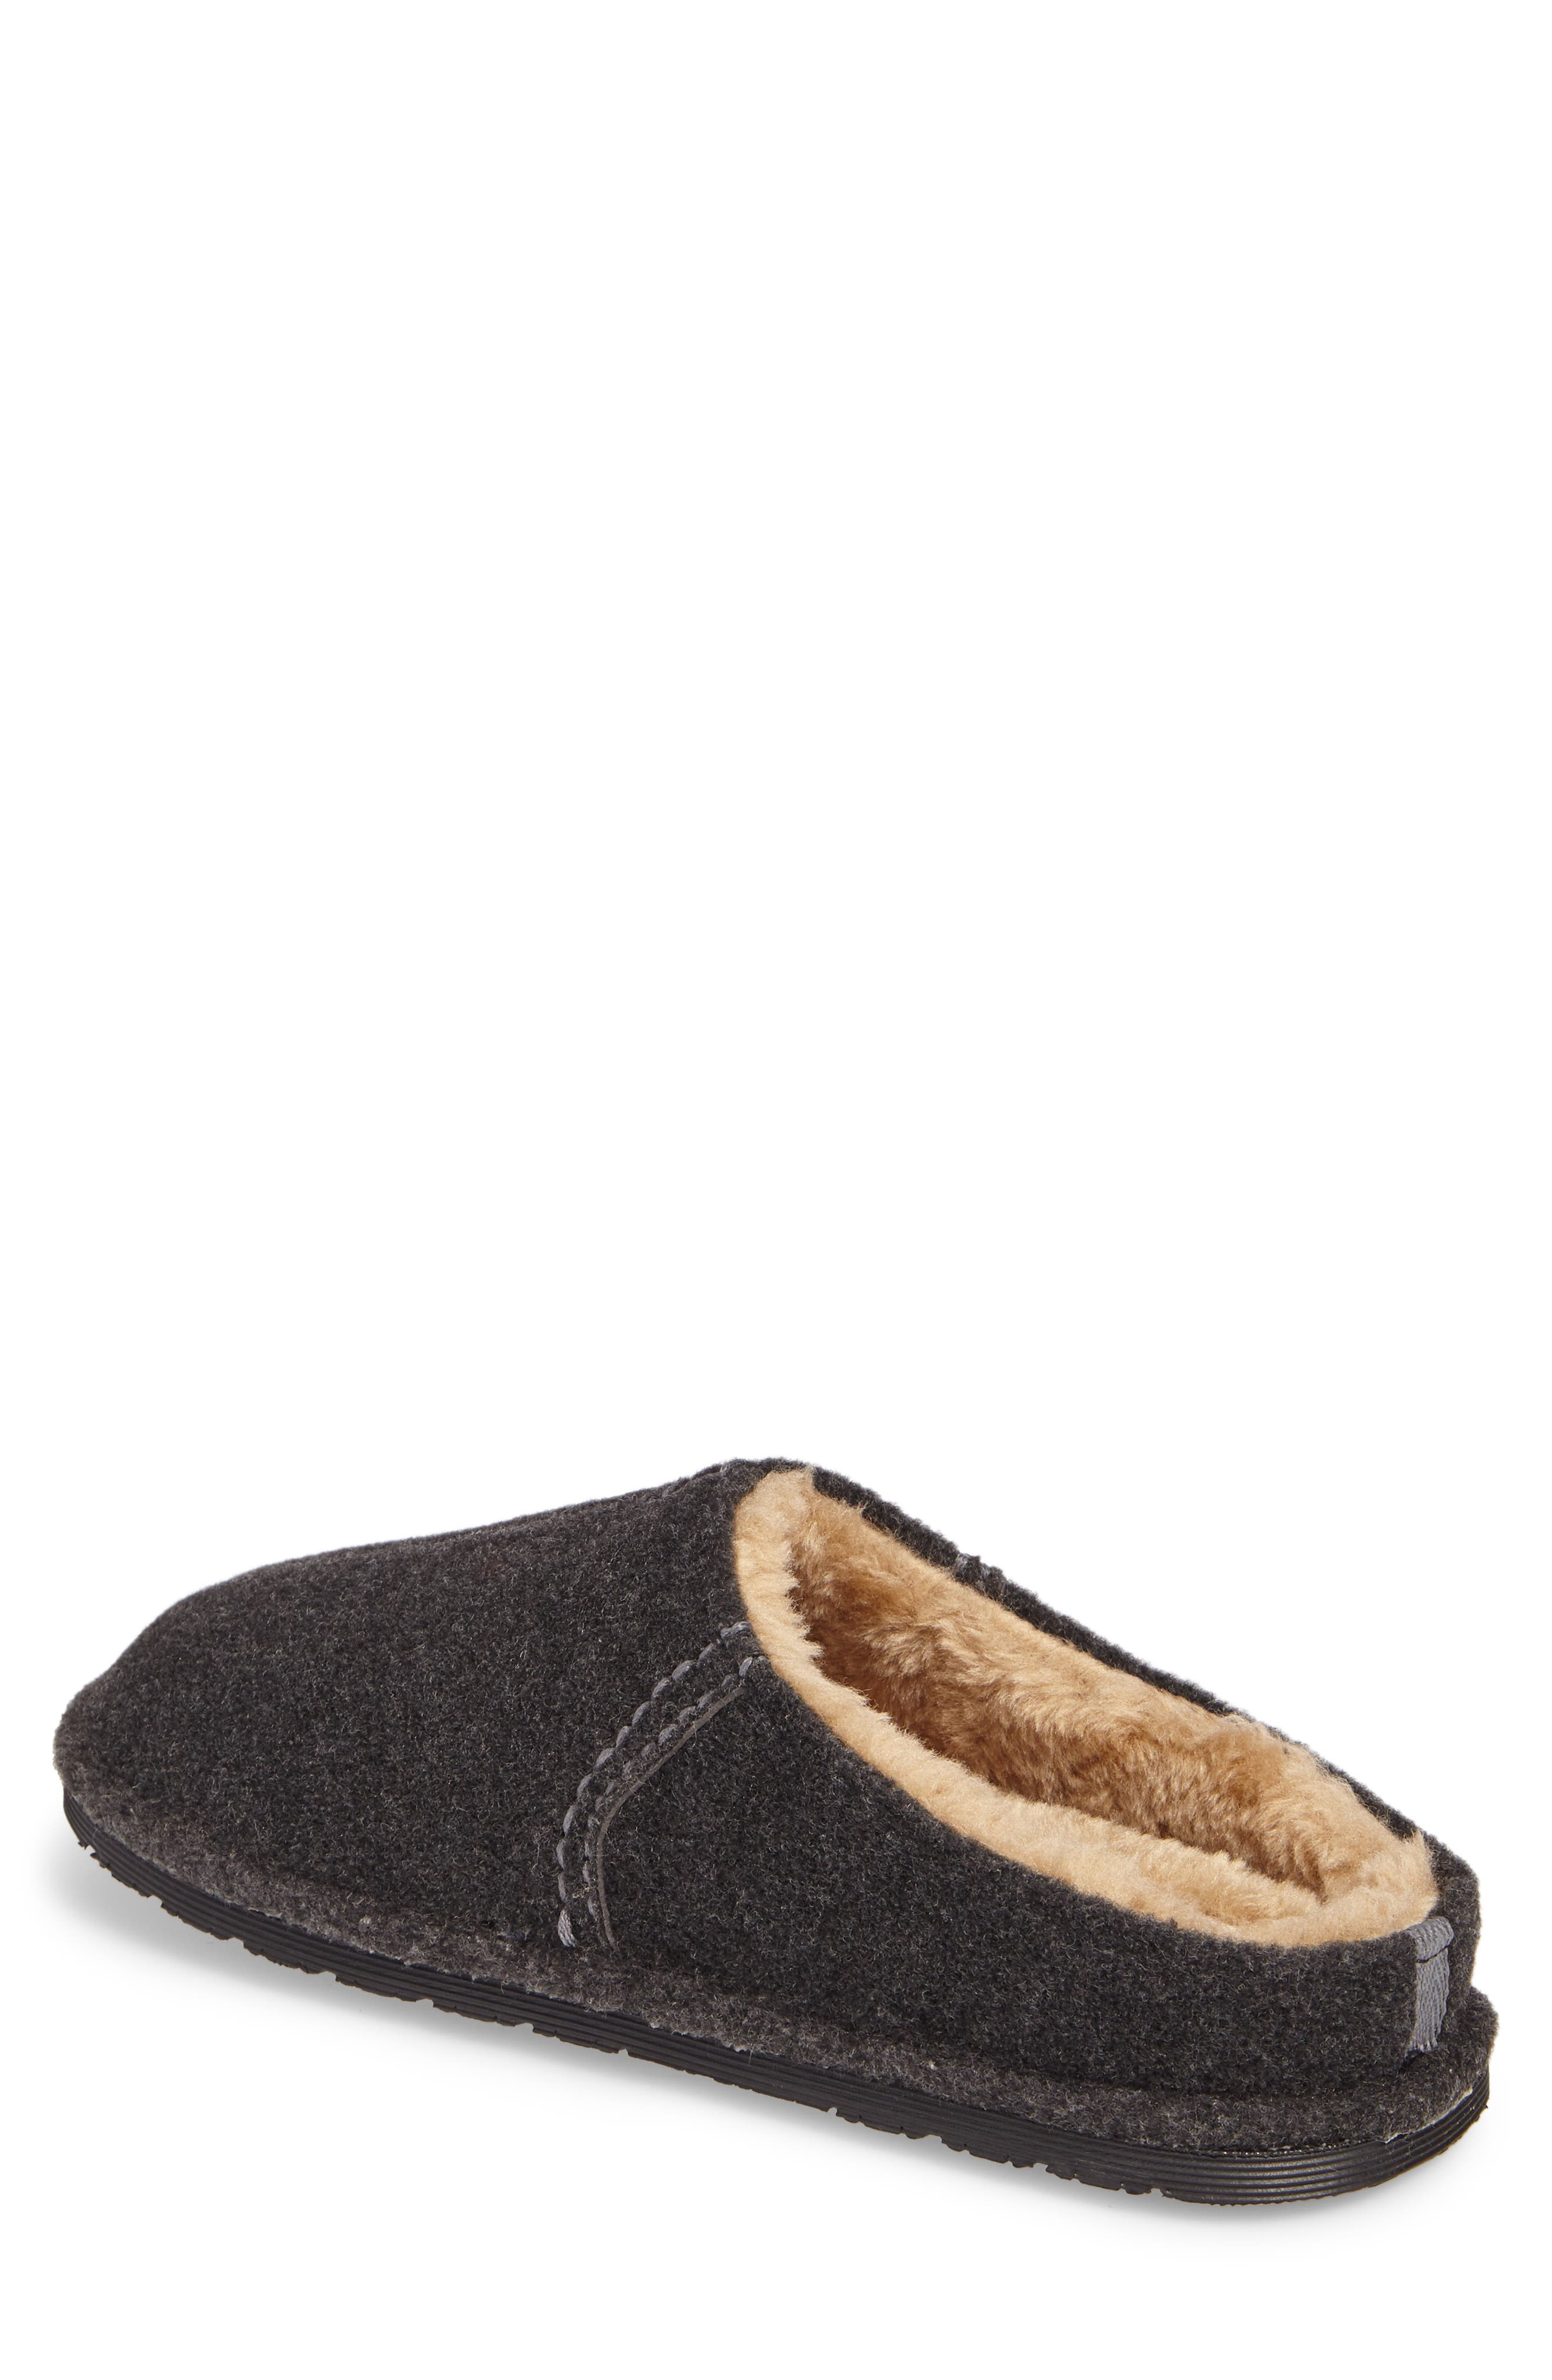 Timber Scuff Slipper,                             Alternate thumbnail 2, color,                             Charcoal Felt/ Polyester